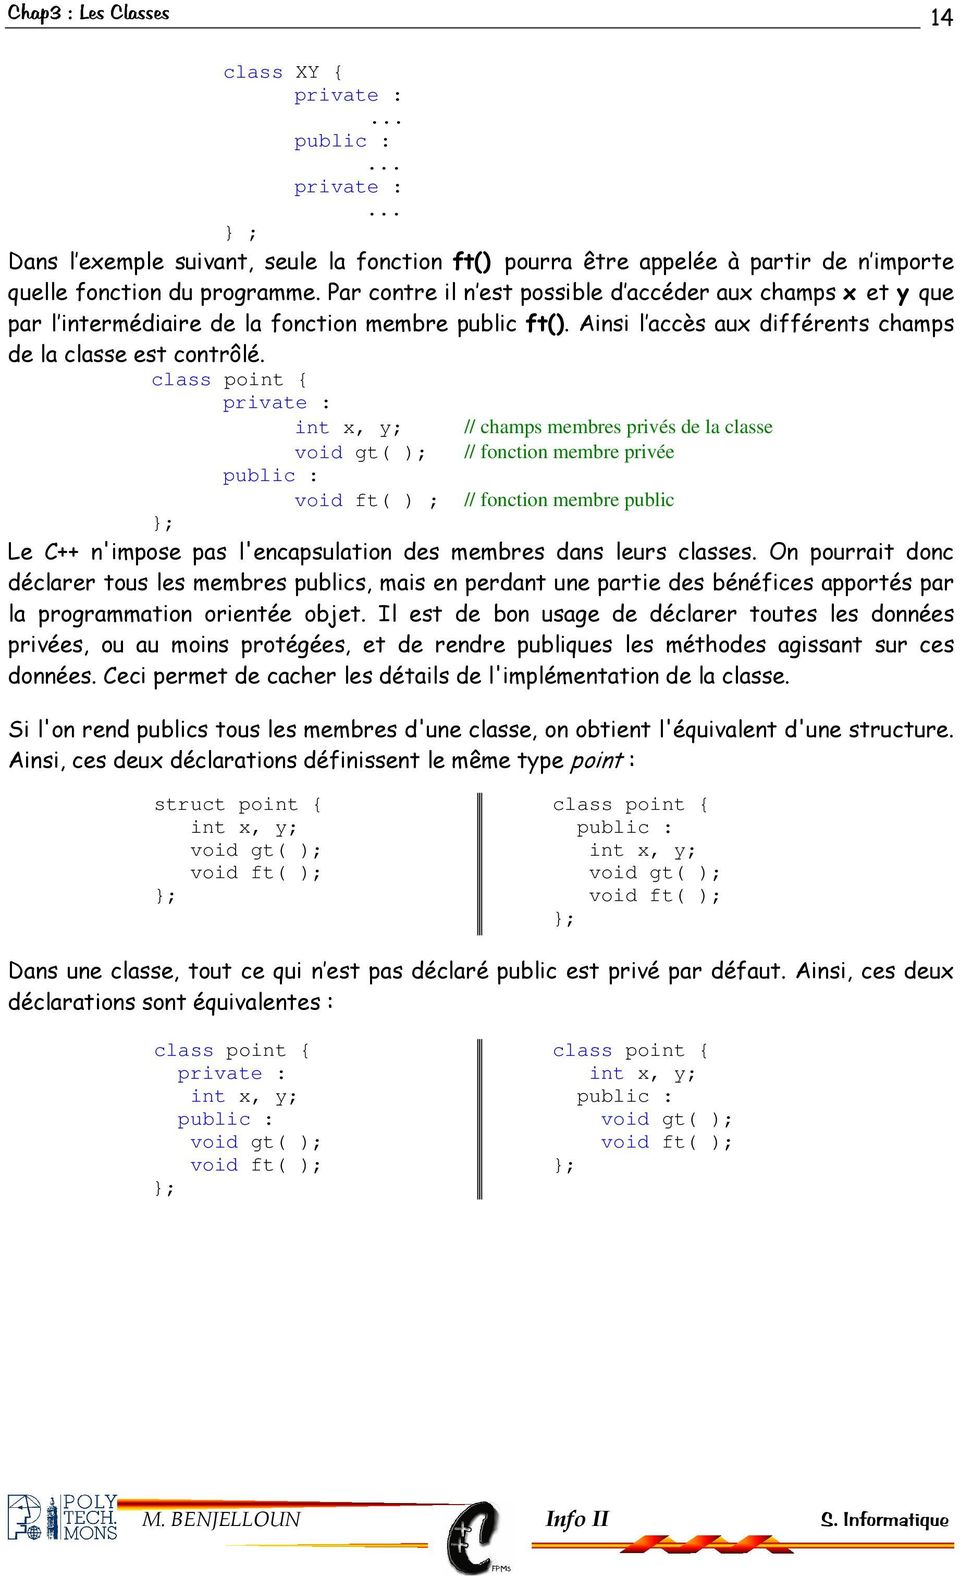 class point { private : int x, y; void gt( ); // fonction membre privée void ft( ) ; // fonction membre public // champs membres privés de la classe ; Le C++ n'impose pas l'encapsulation des membres